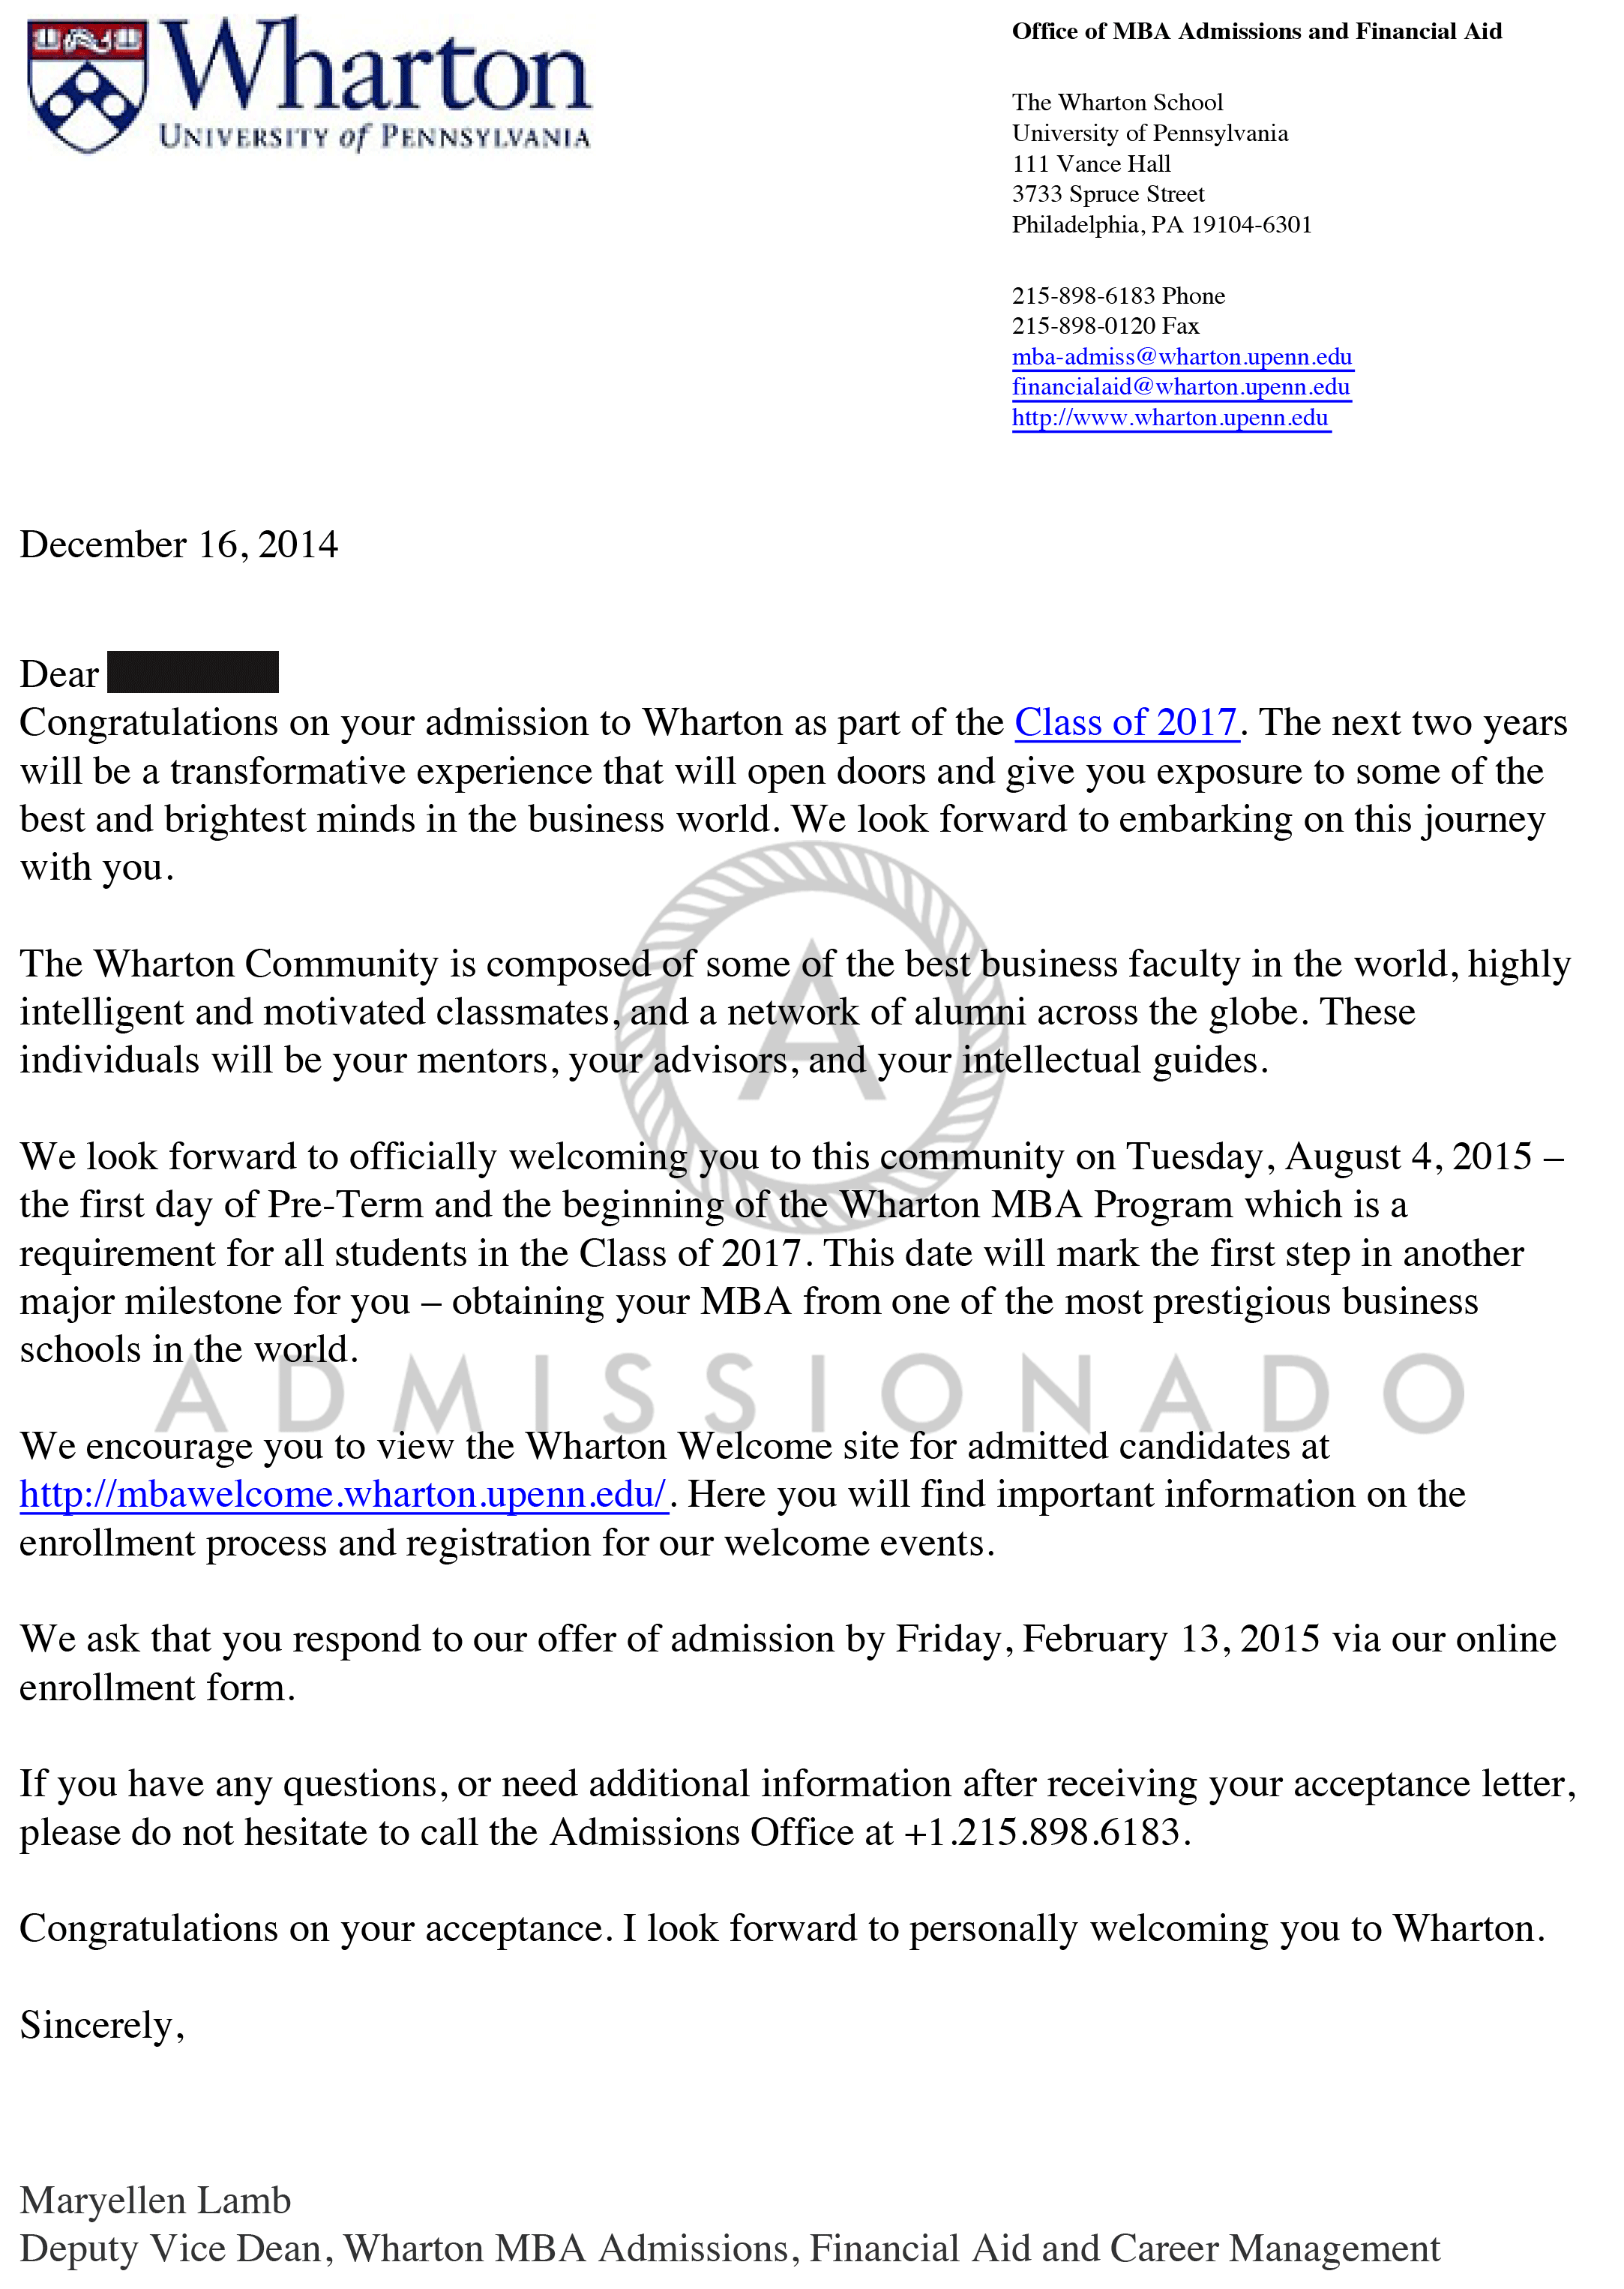 Wharton School of Business Offer Letter